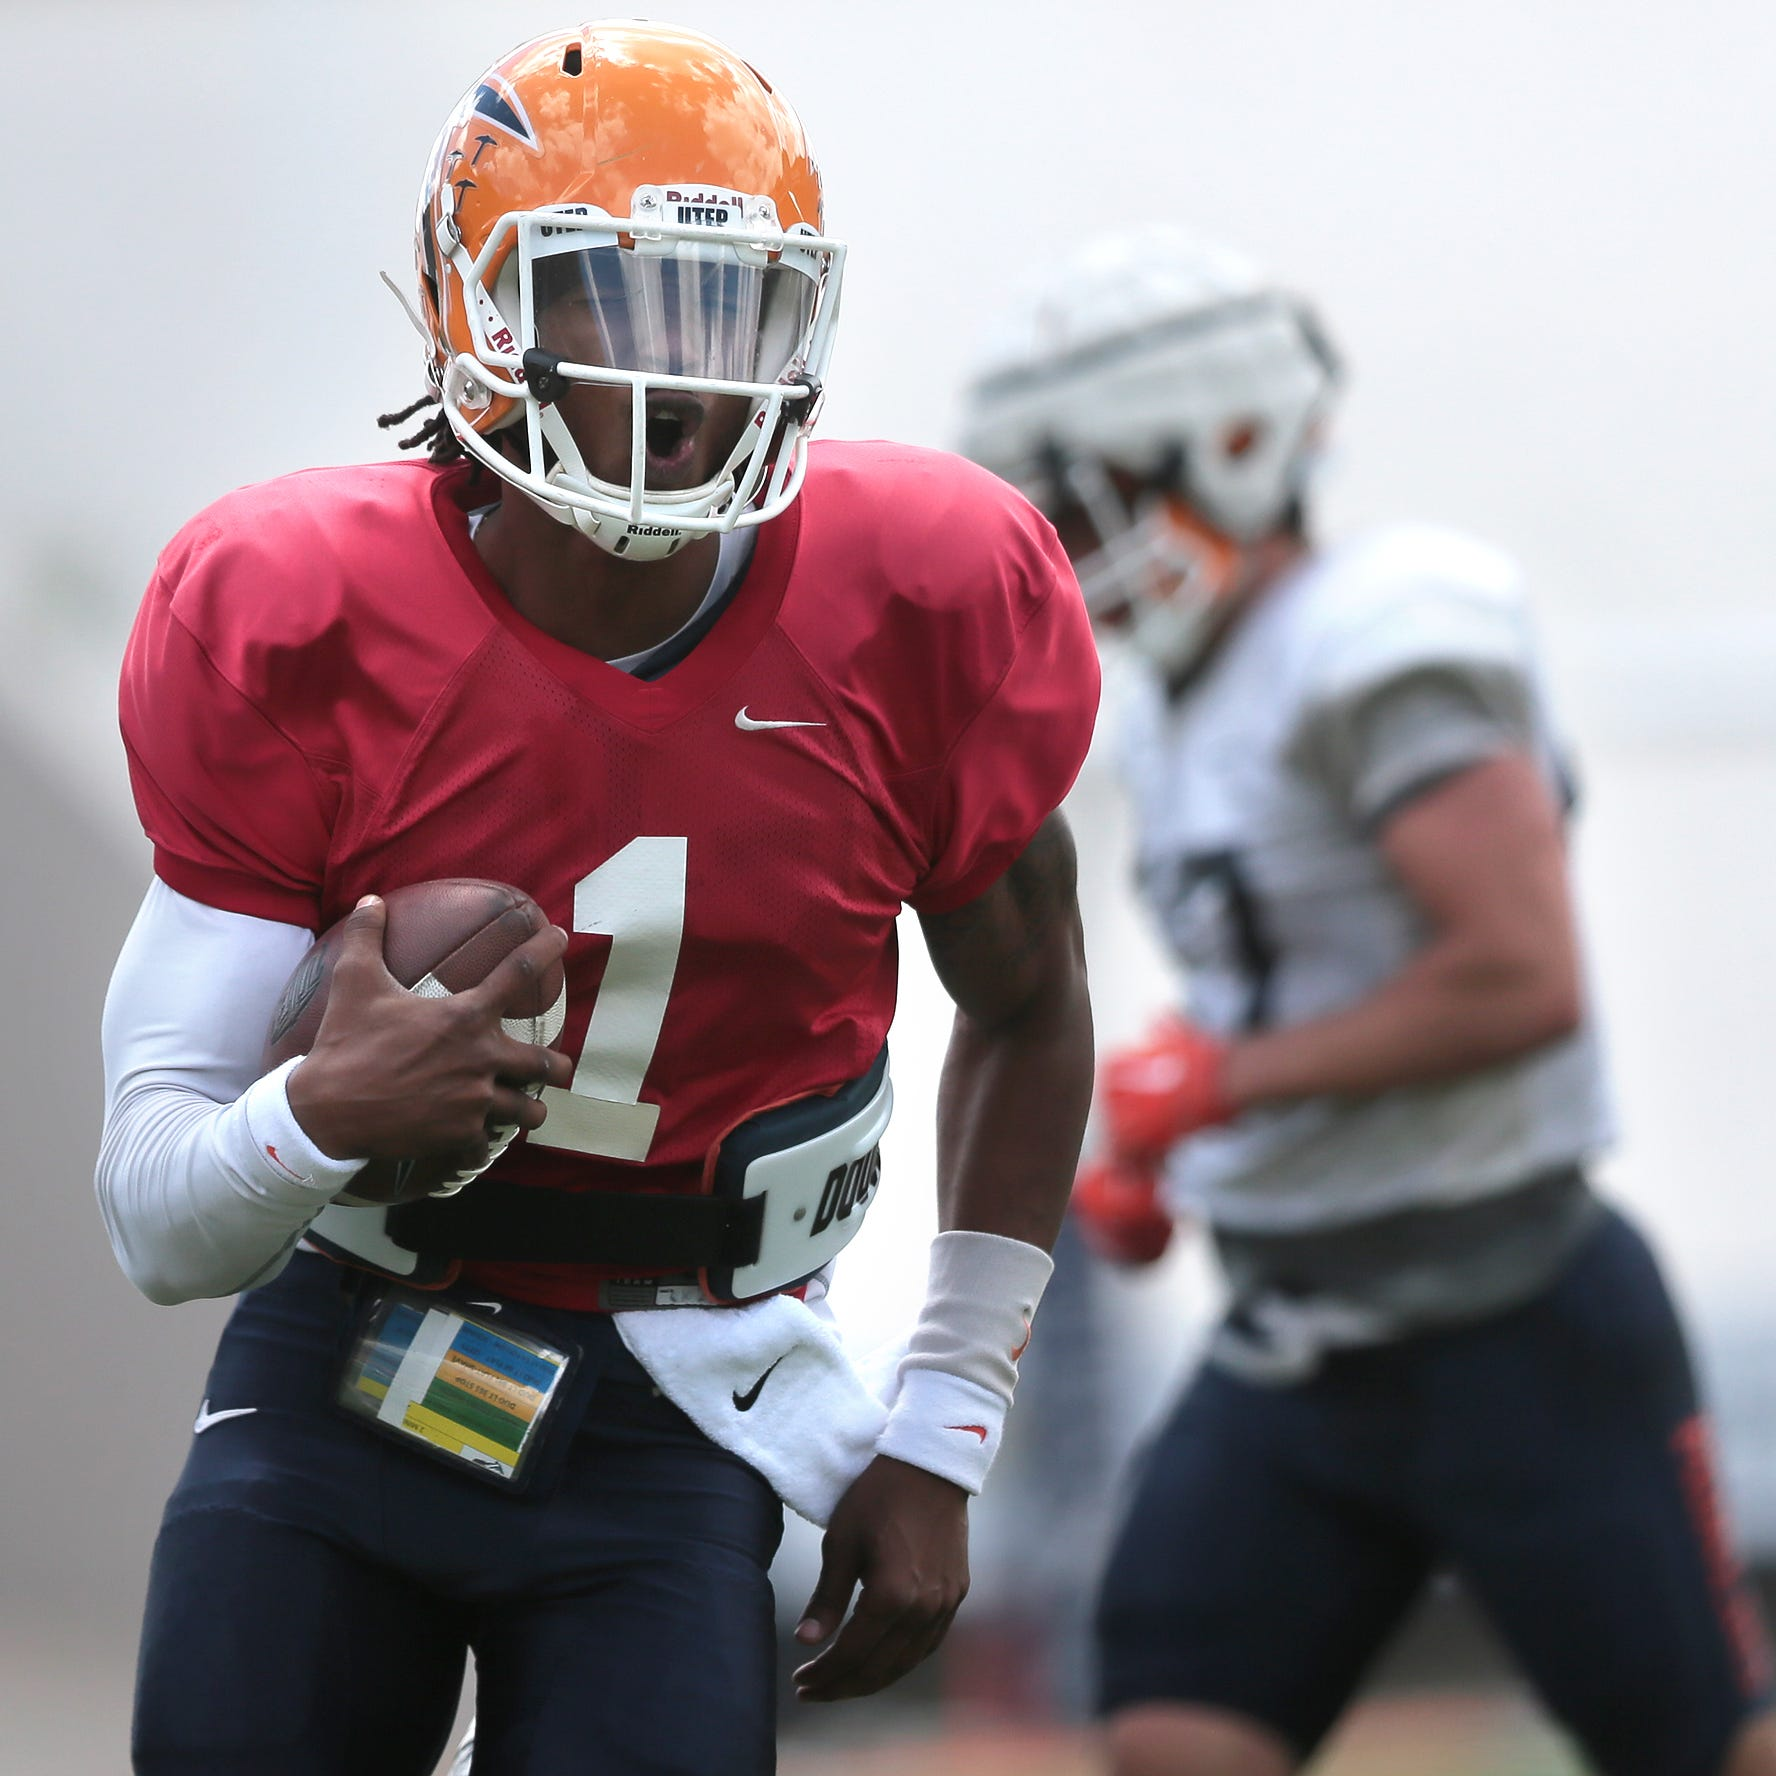 Five questions about UTEP football and what we learned in the spring